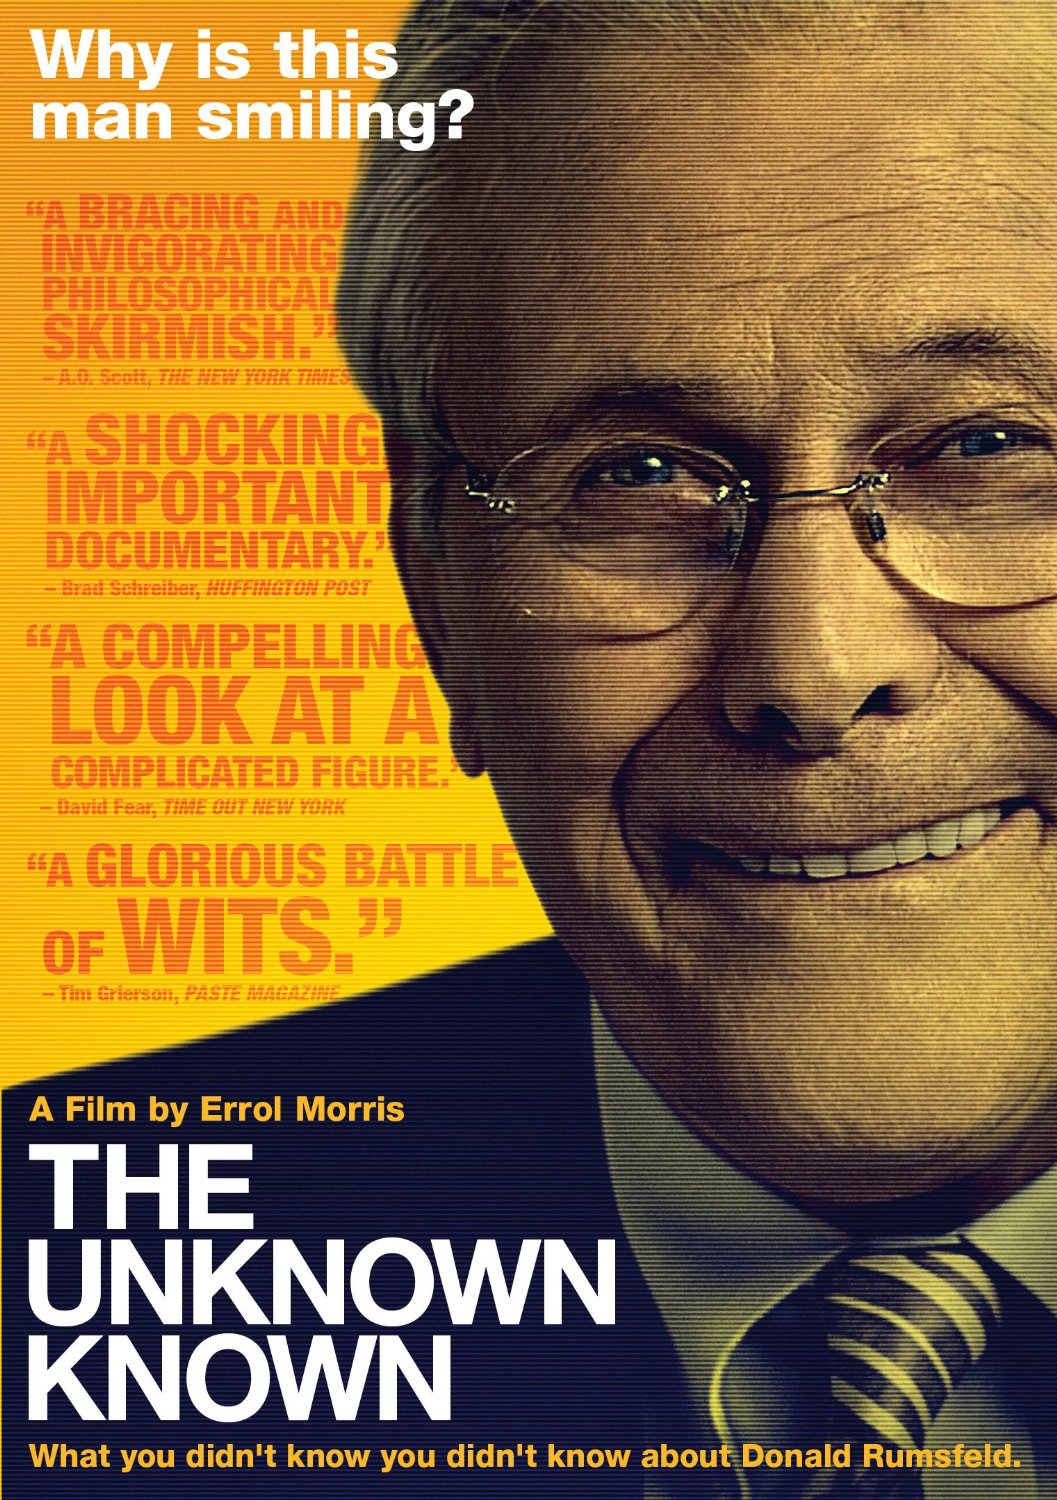 The Unknown Known DVD cover